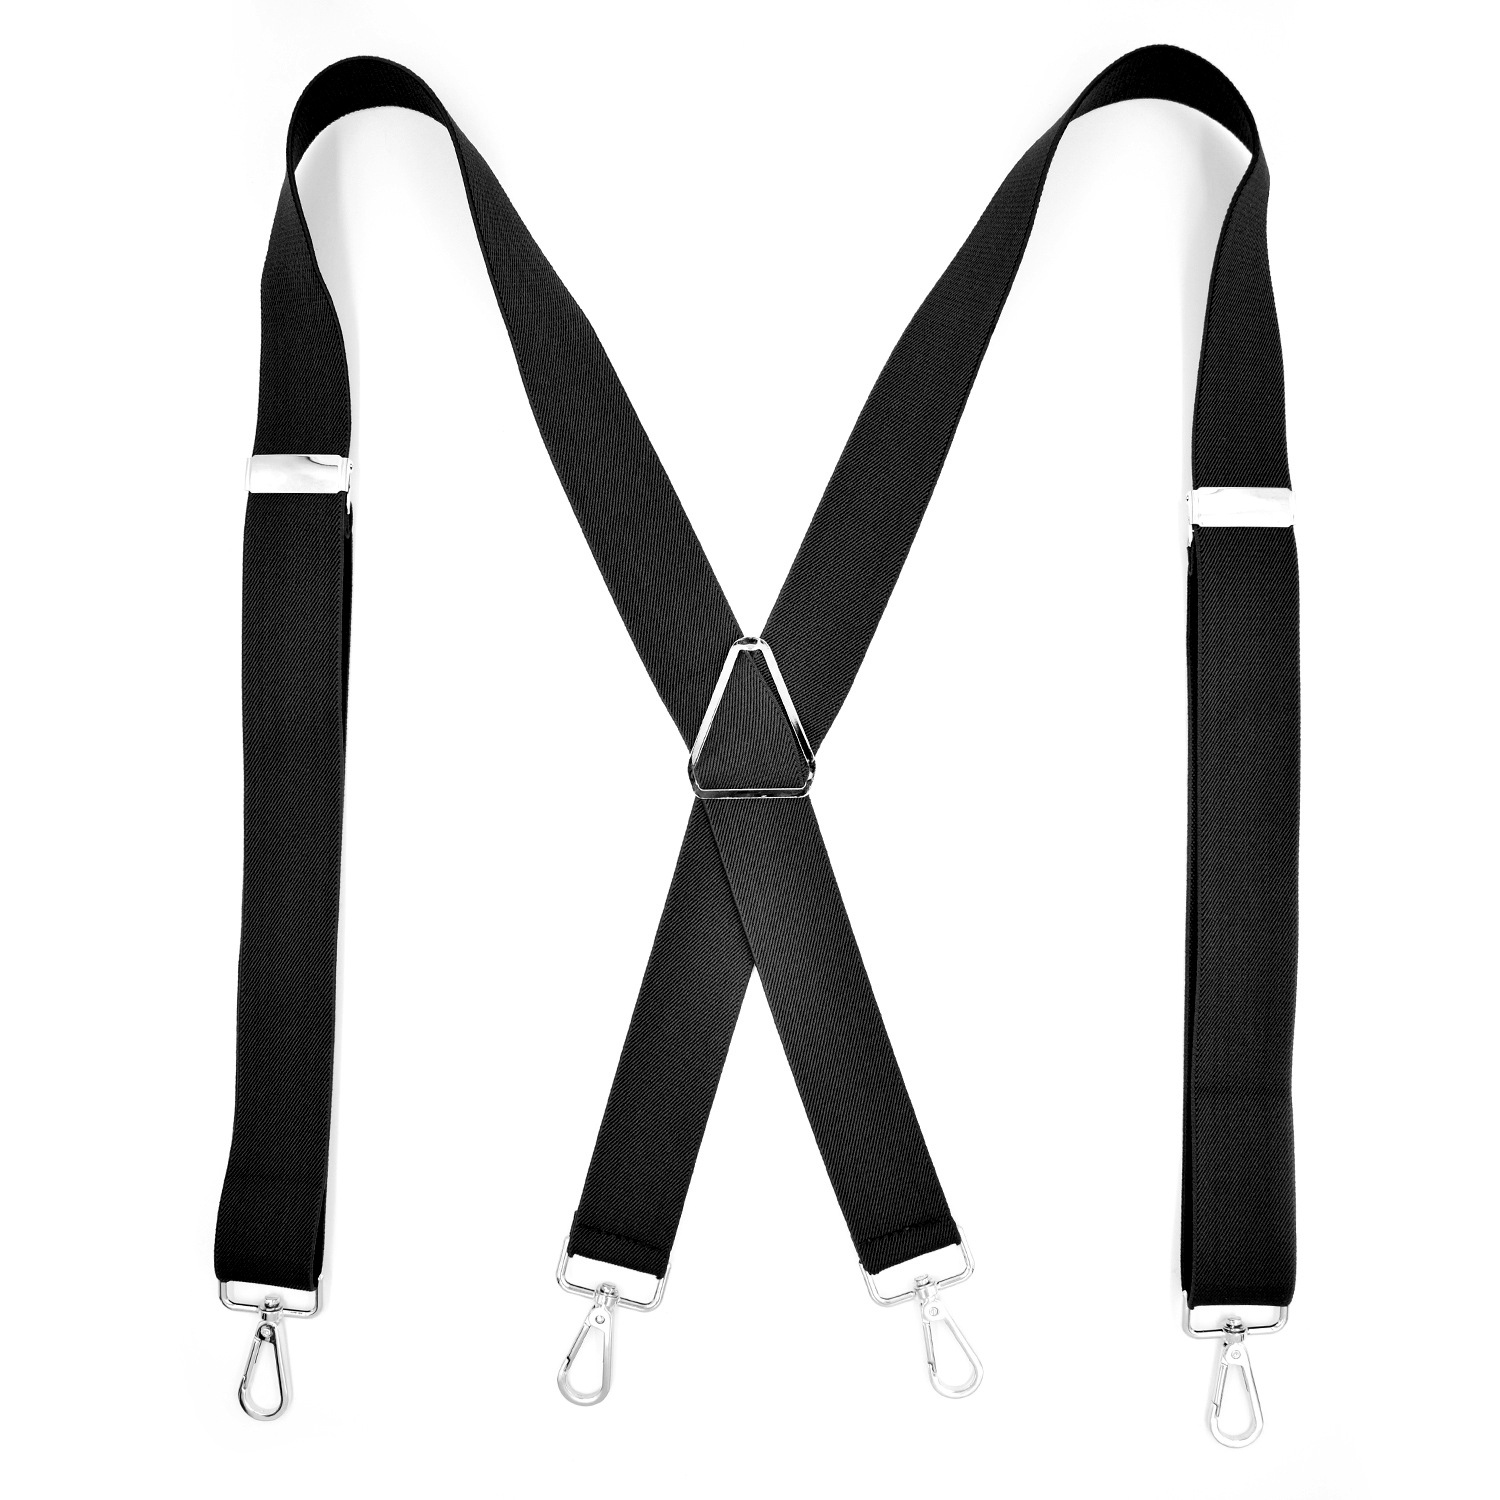 Cross Border Supply Of Goods Adult 4 Clip Black And White With Pattern Suspender Strap Hook Buckle Triangle Suspender Strap Clip